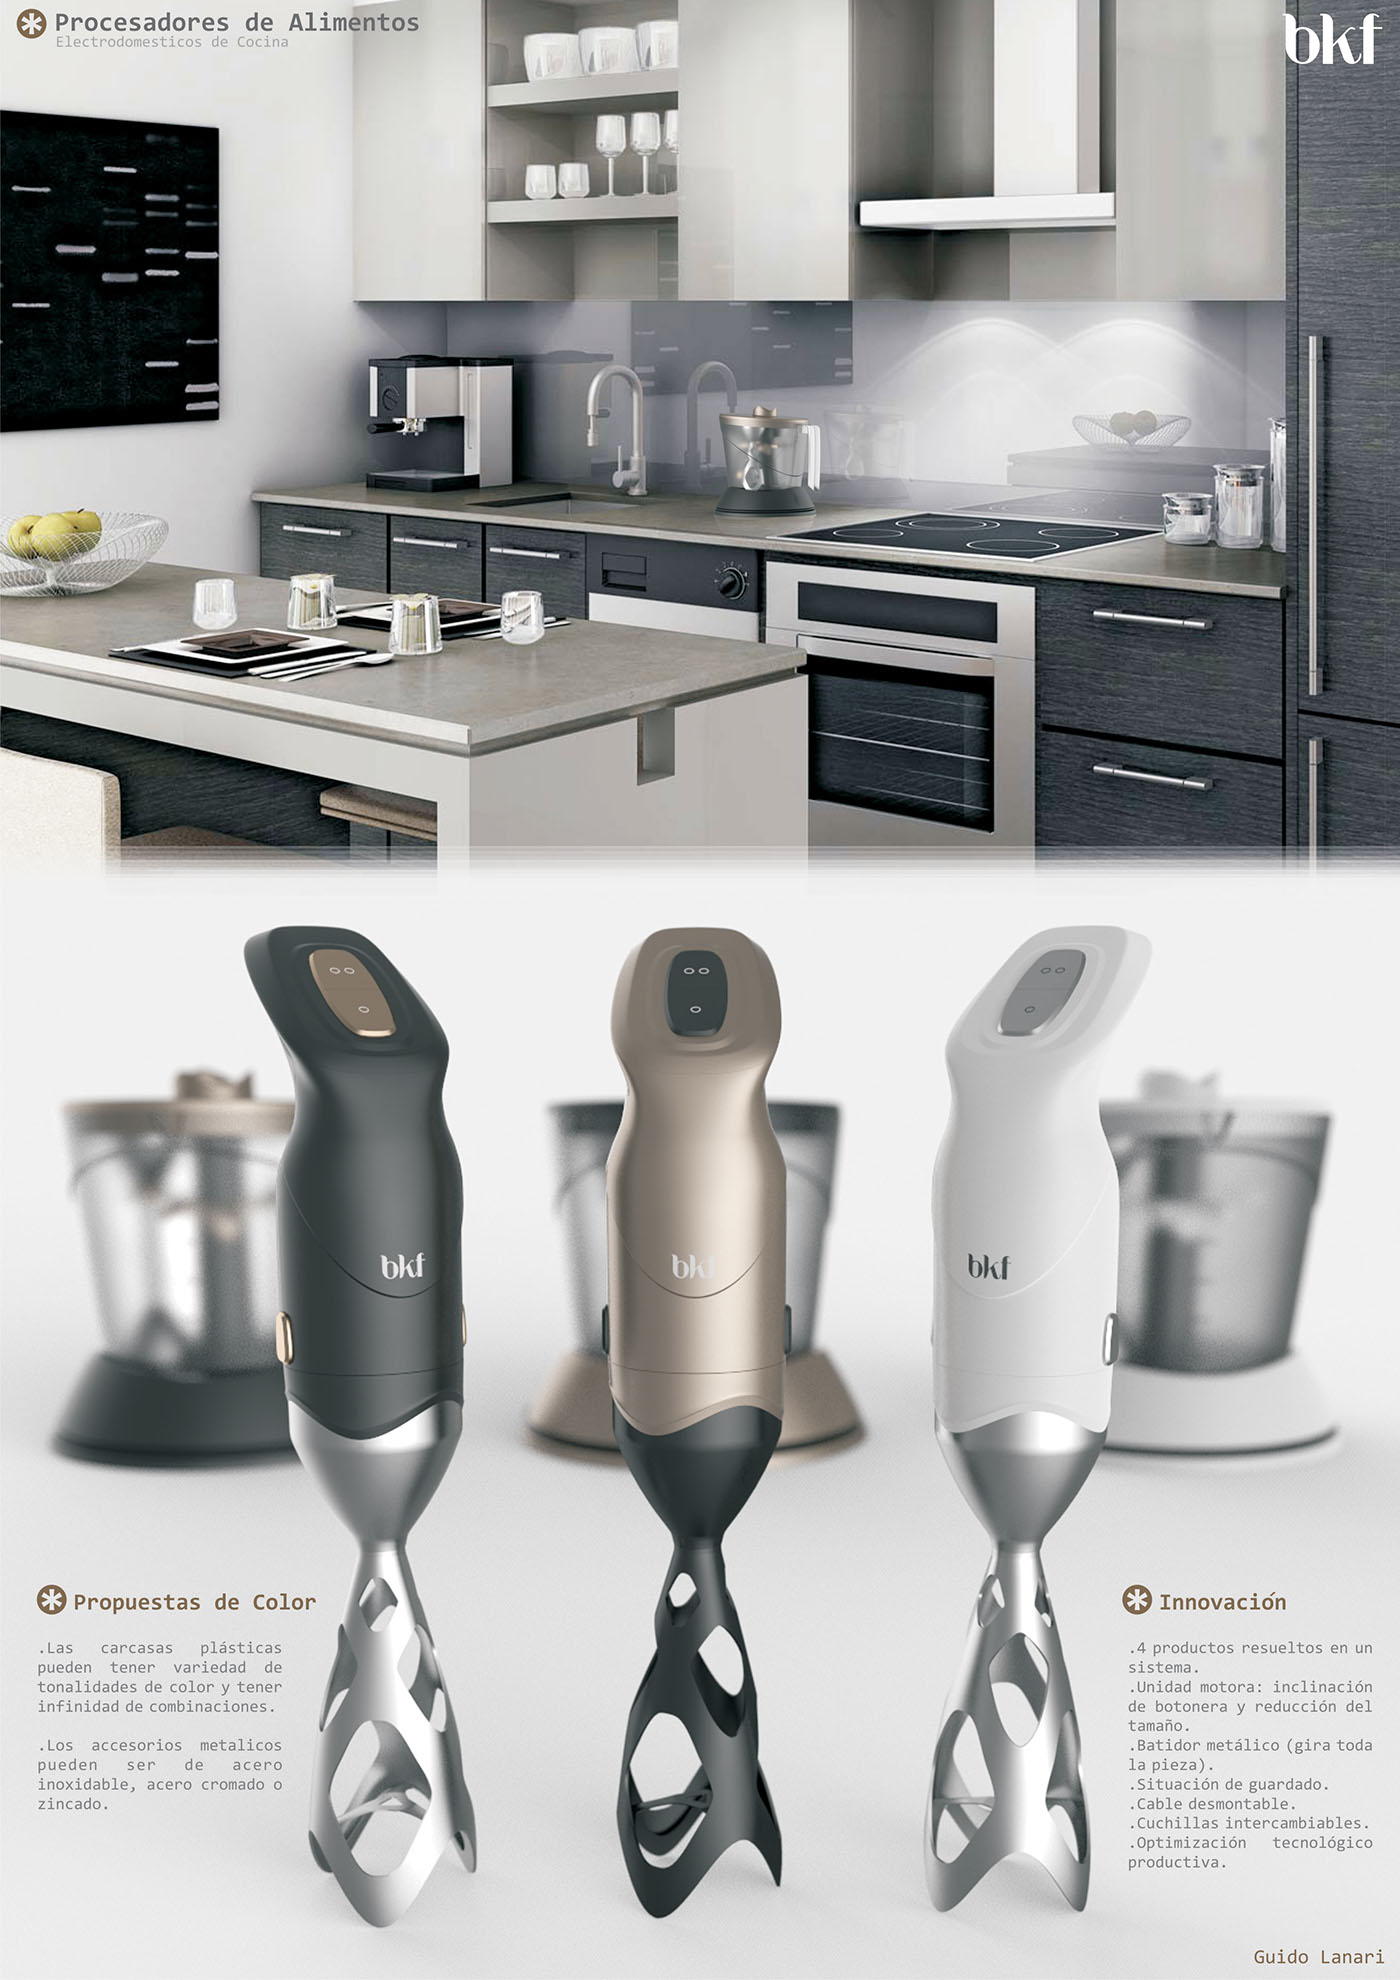 Kitchen Appliances on Behance